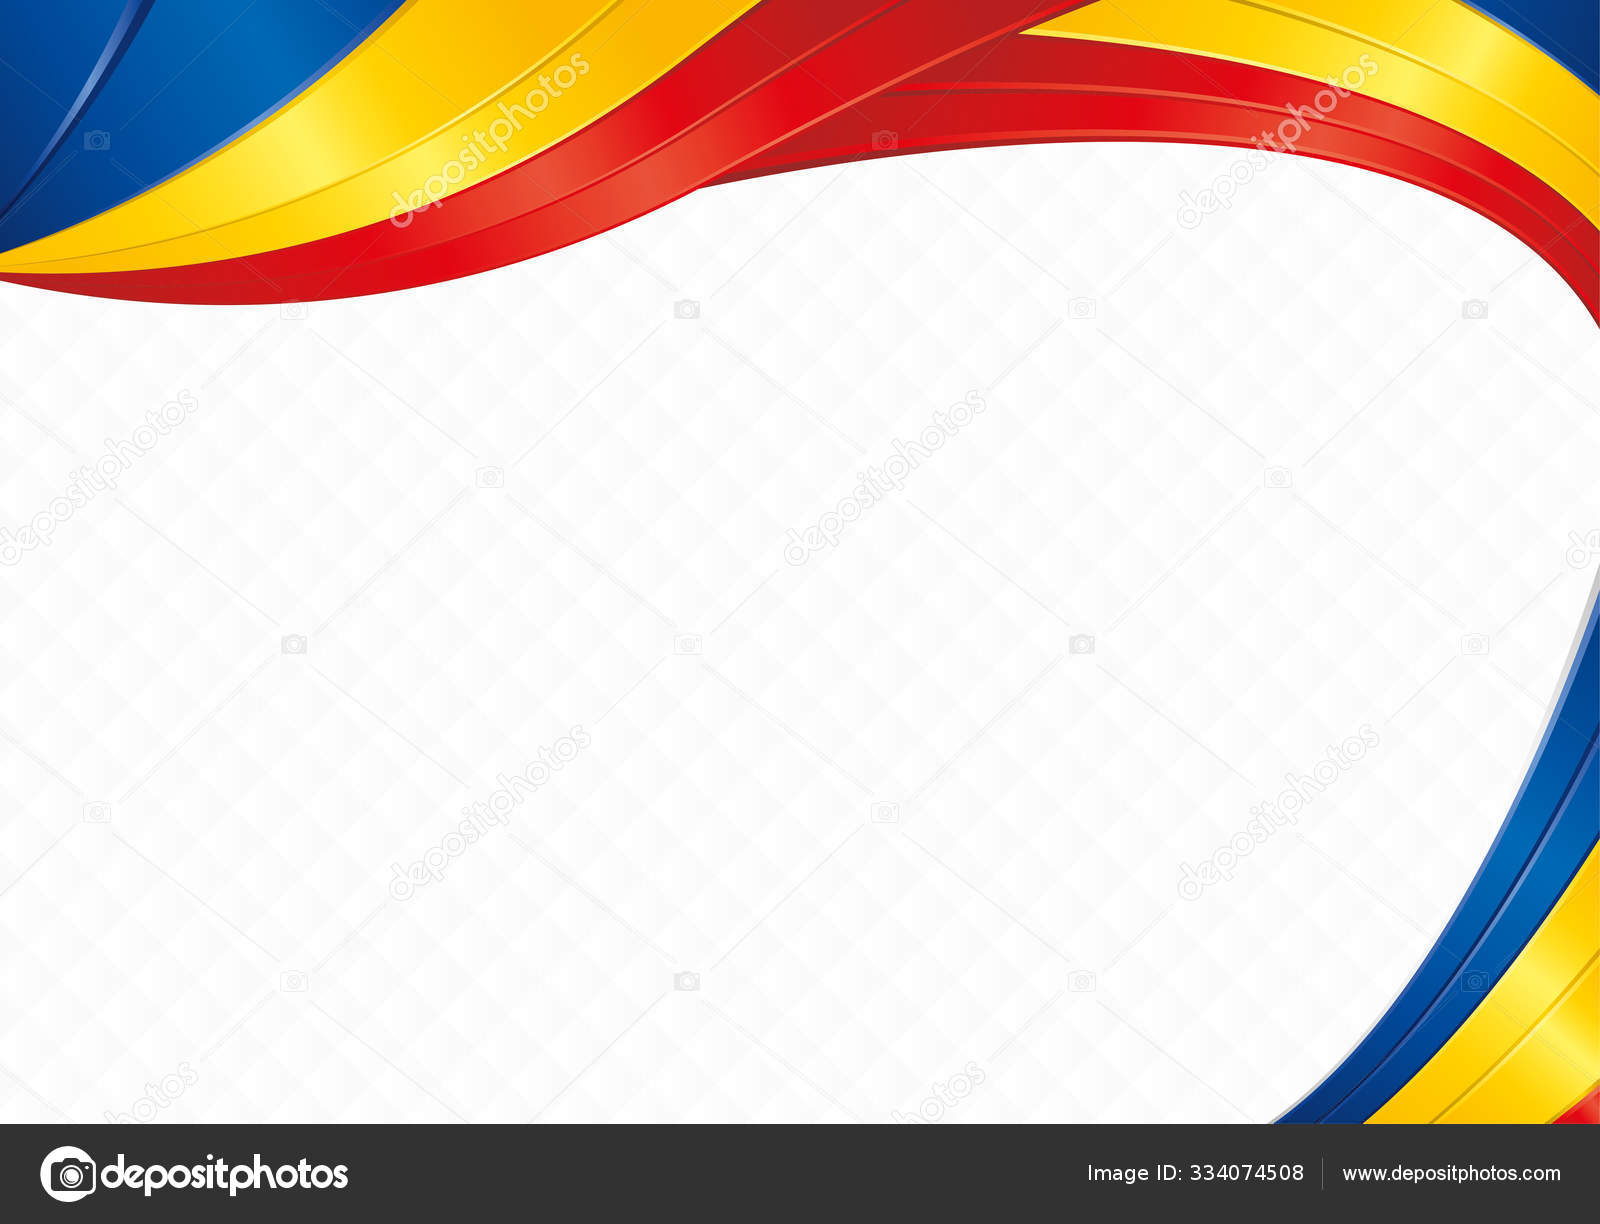 Abstract Background Wave Shapes Blue Yellow Red Colors Flag Romania Stock Vector Image By C Alejomiranda 334074508